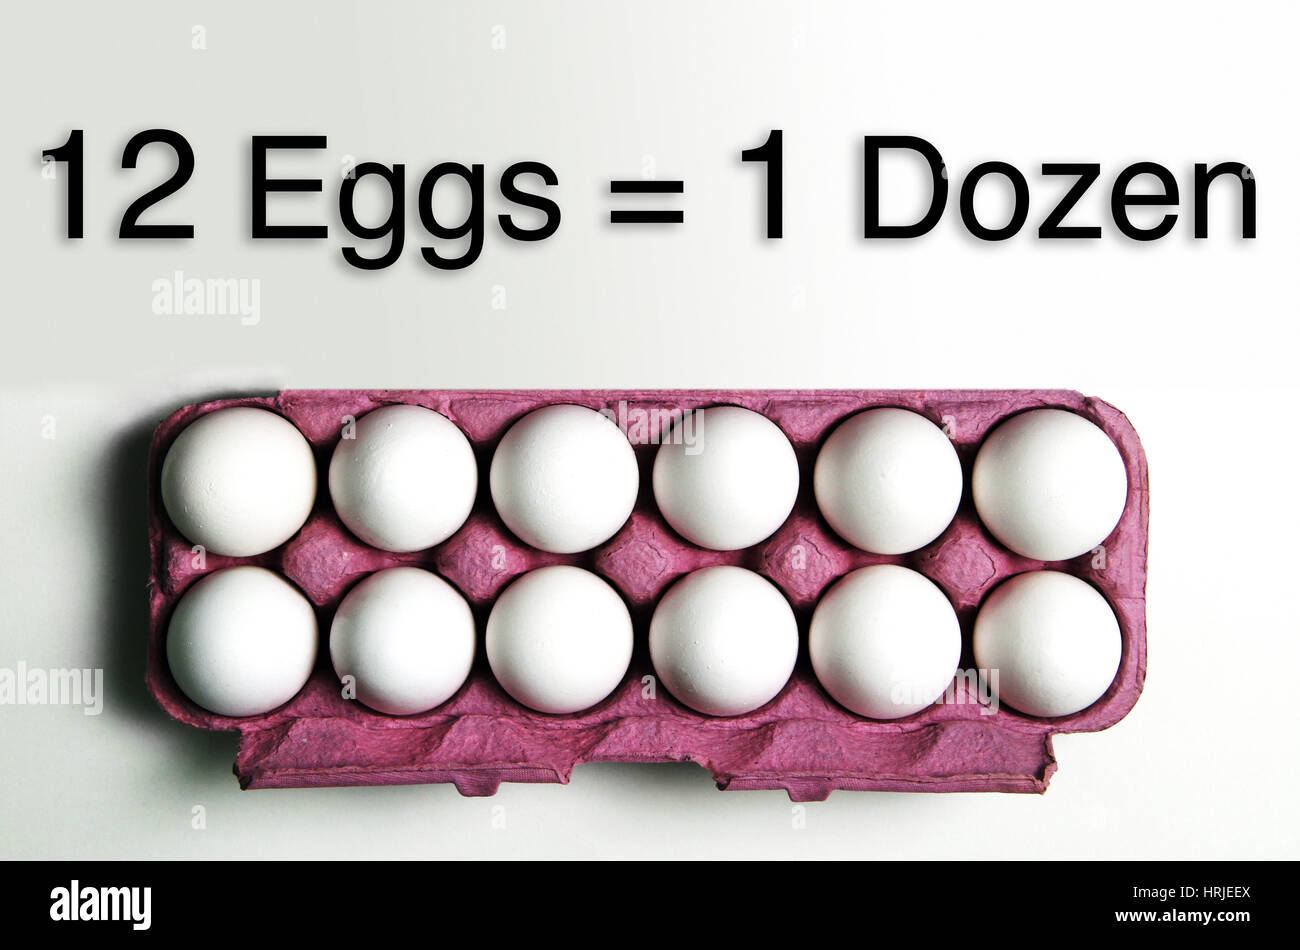 One Dozen = 12 Eggs - Stock Image